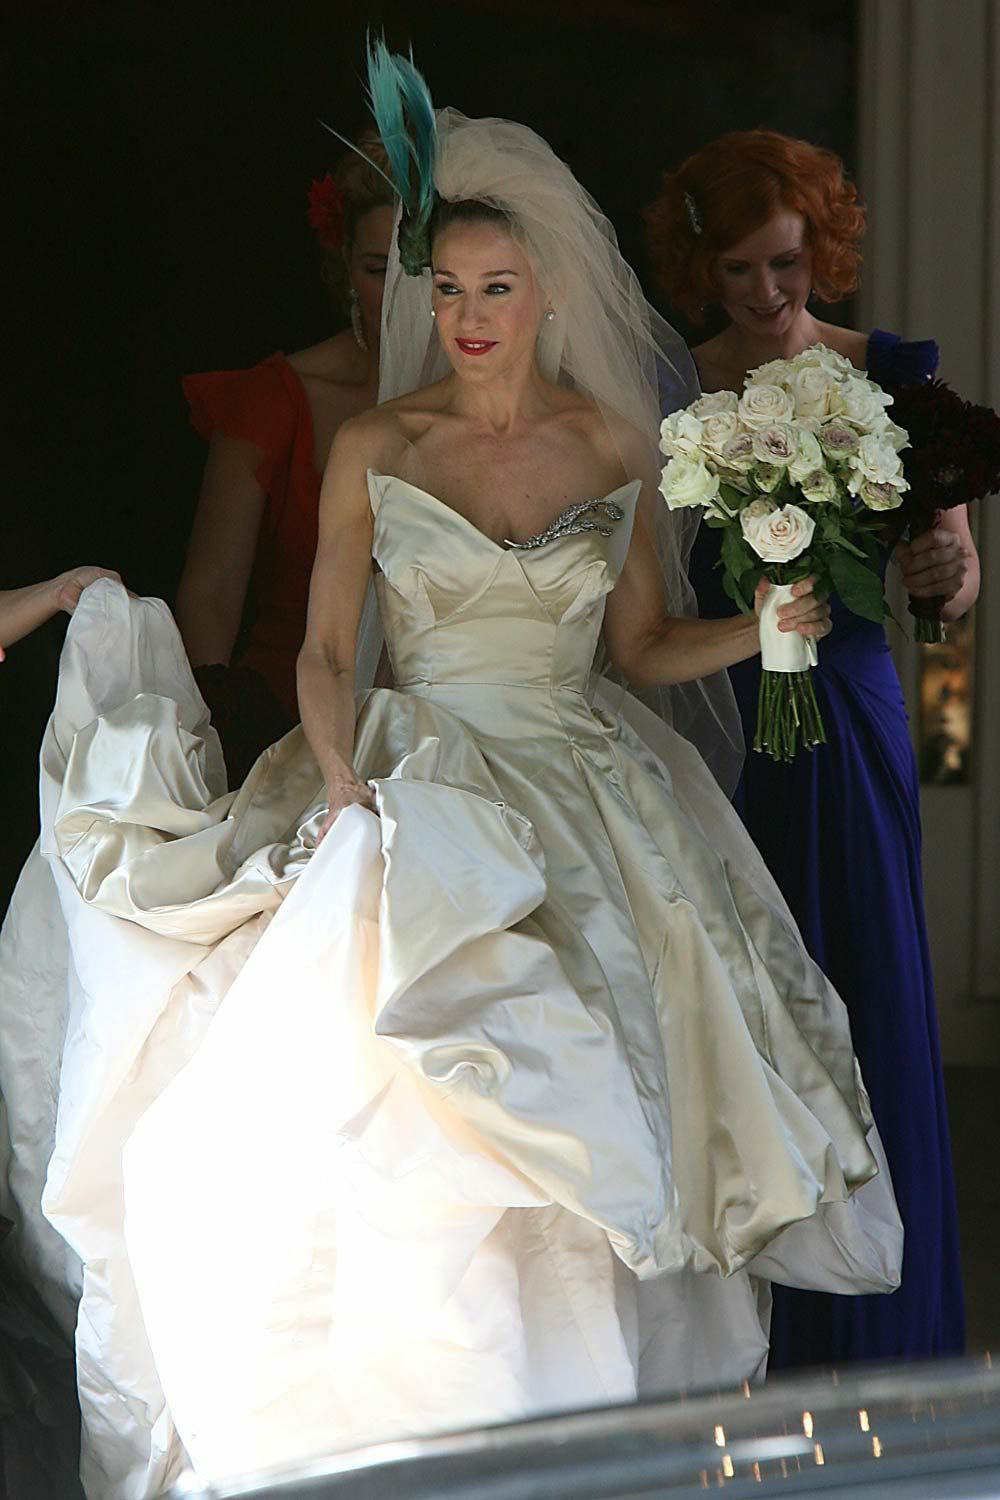 carrie bradshaw in the vivianne westwood wedding gown | yez, i